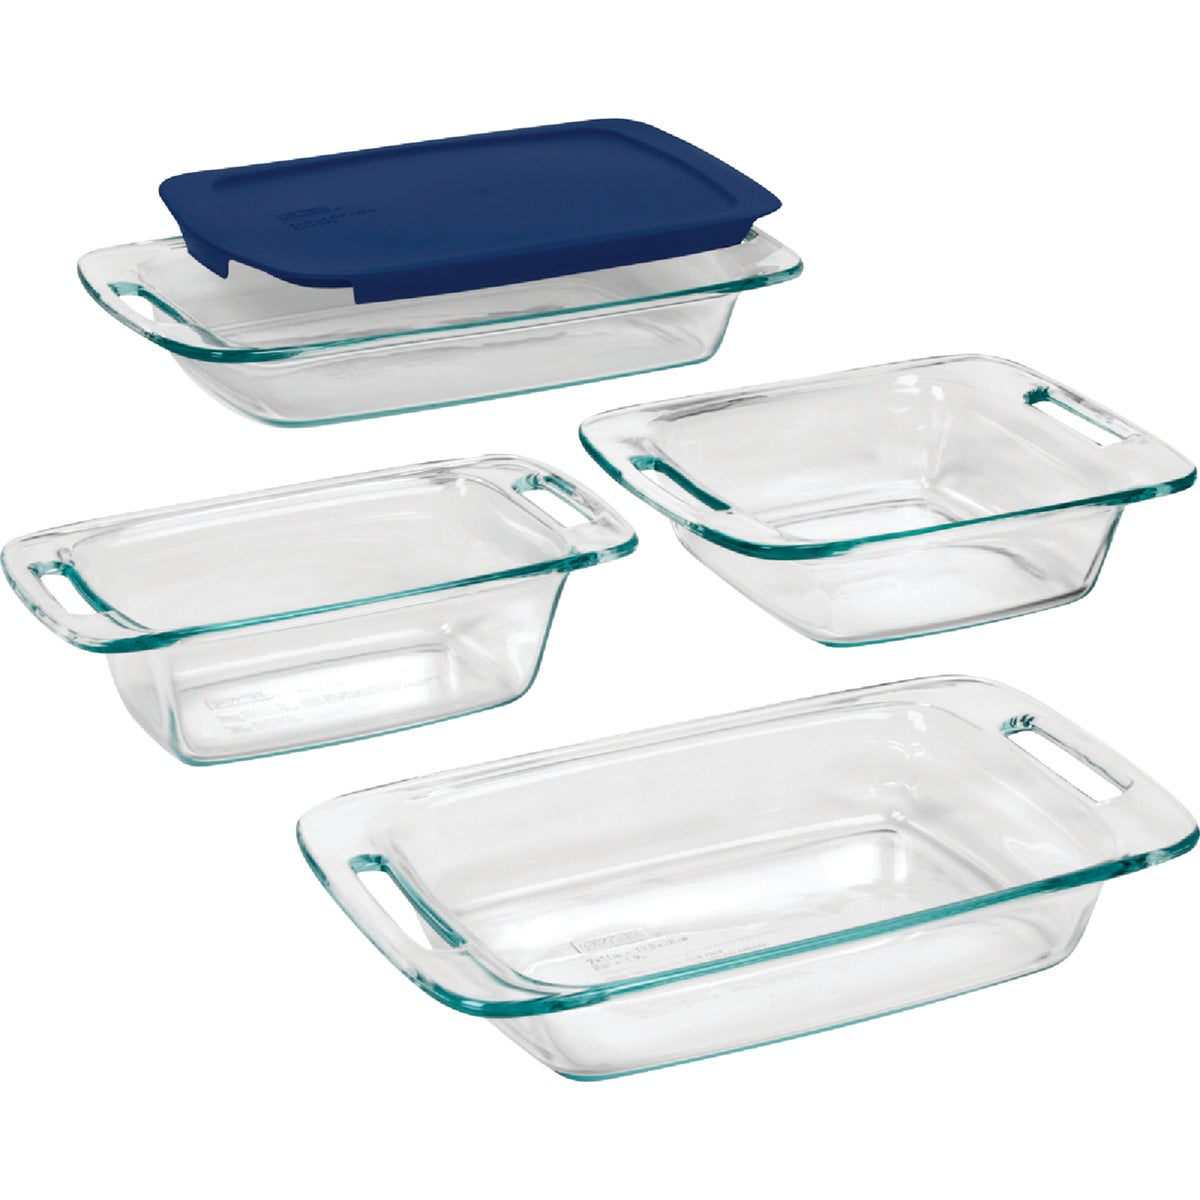 5PC PYREX BAKEWARE SET - 1093842 by World Kitchen